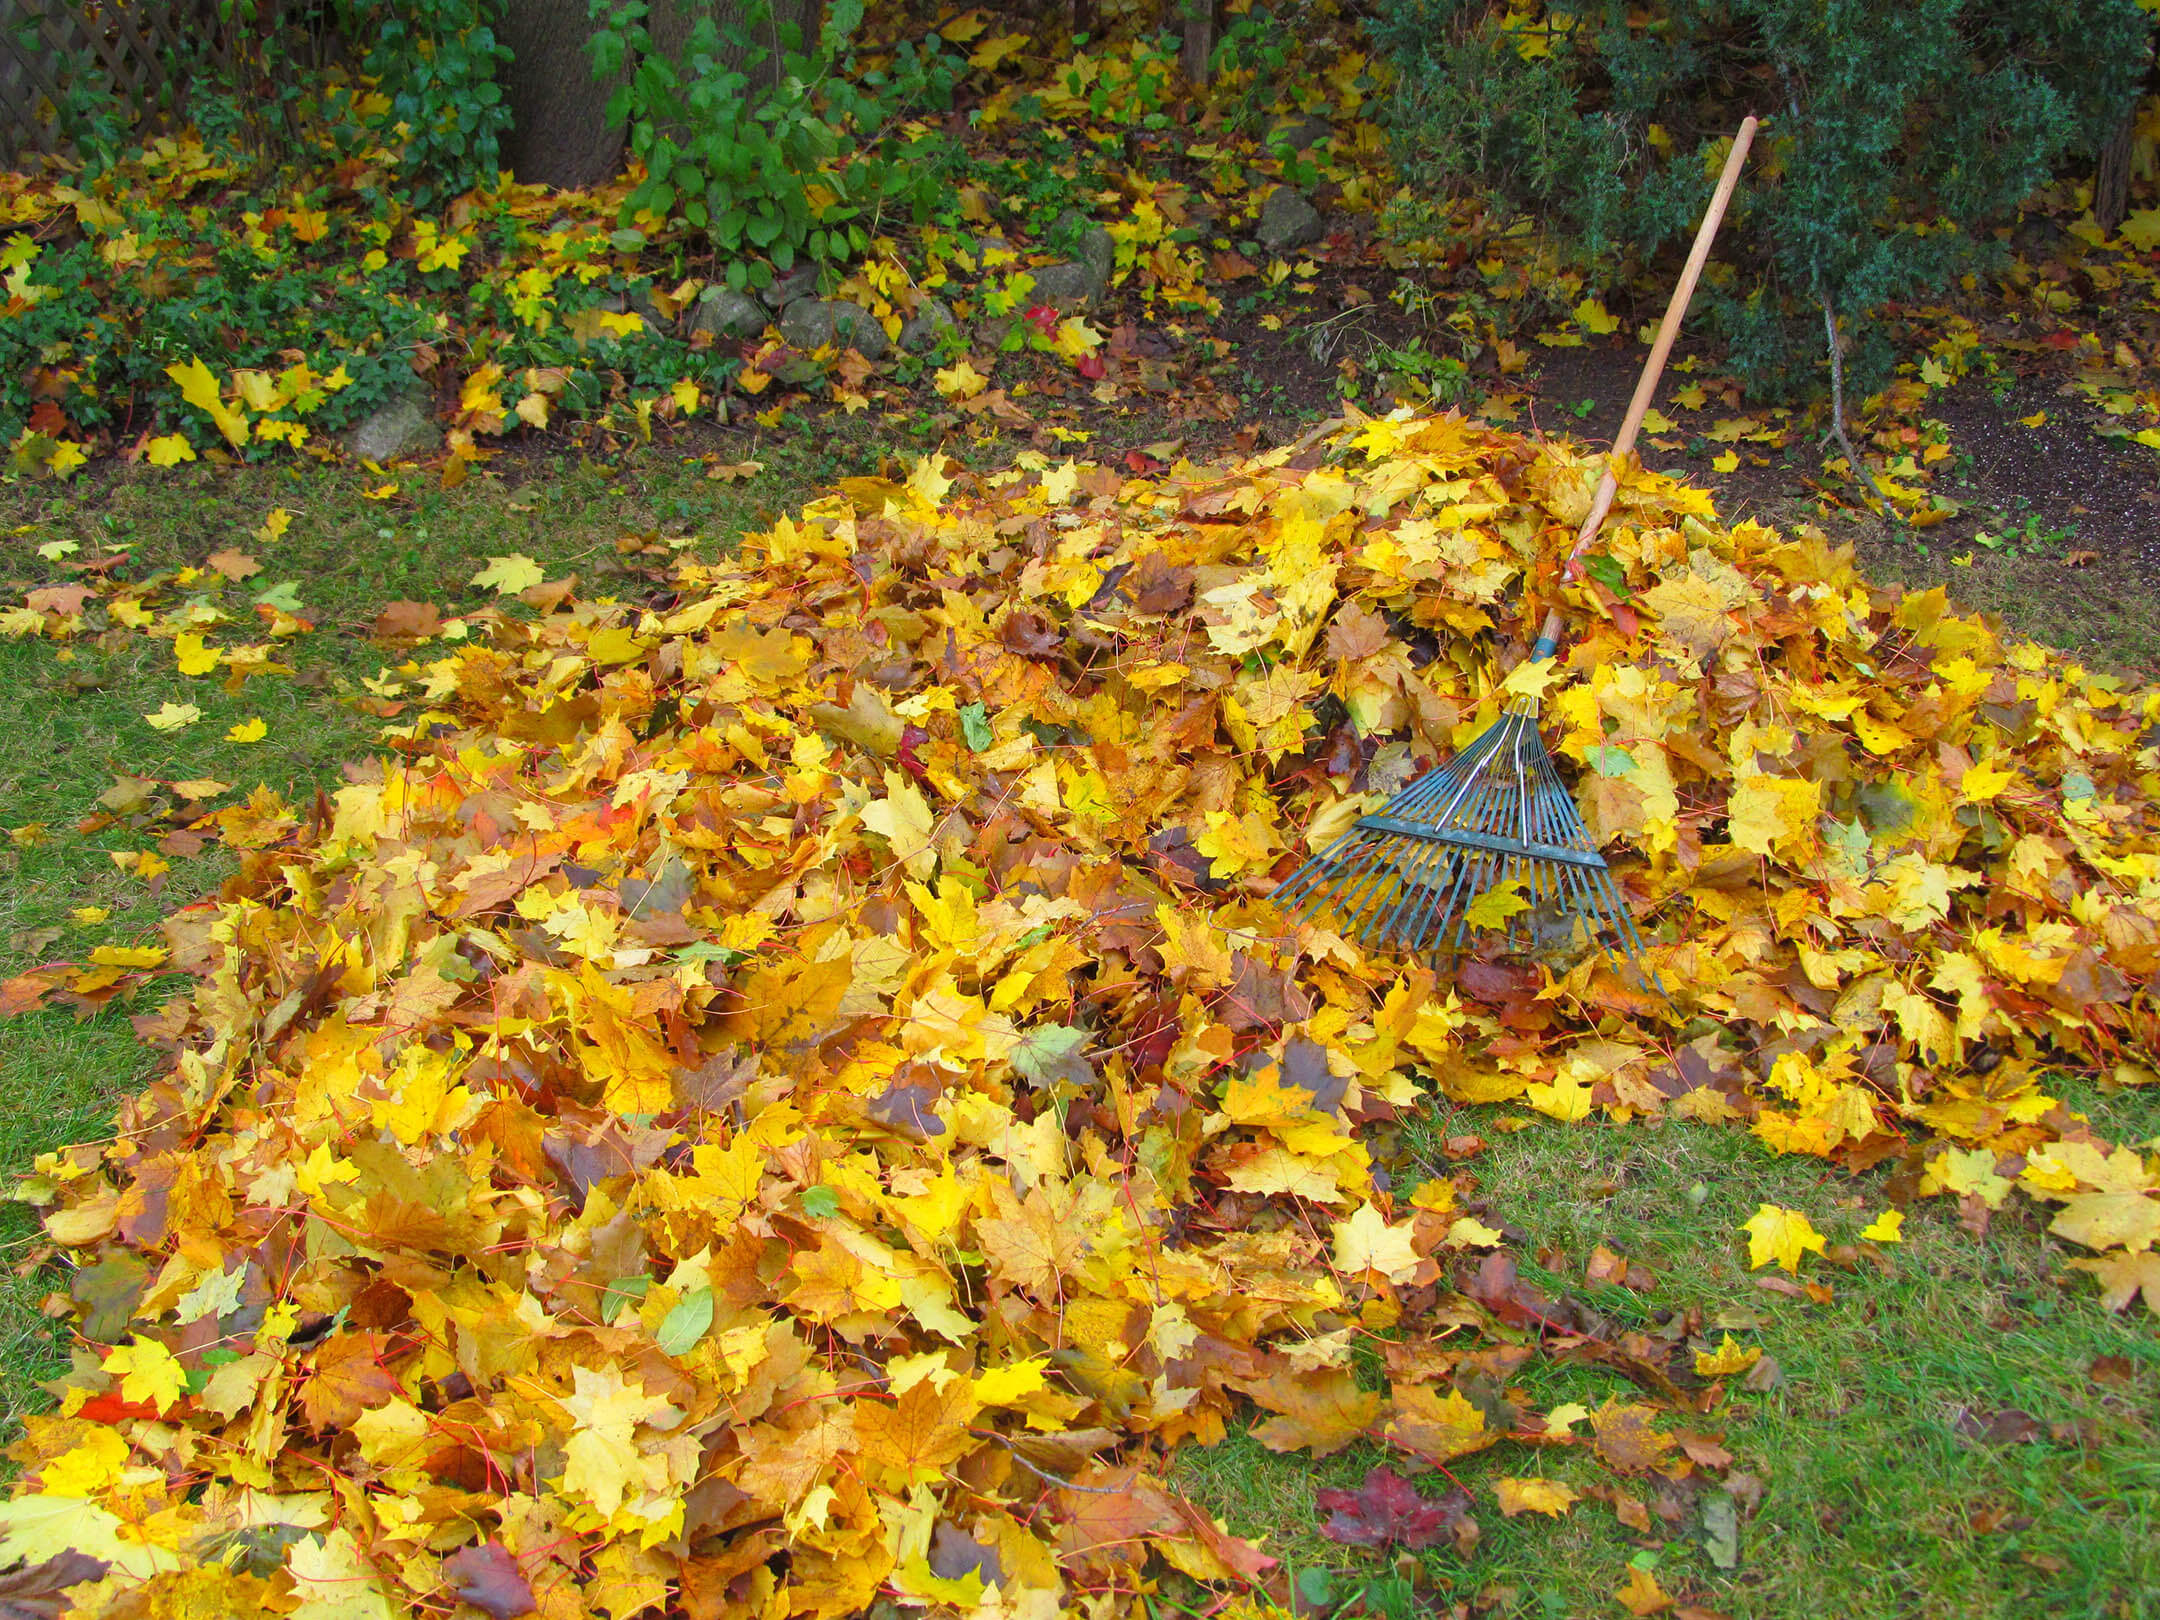 A pile of orange leaves on the ground with a rake laying on them